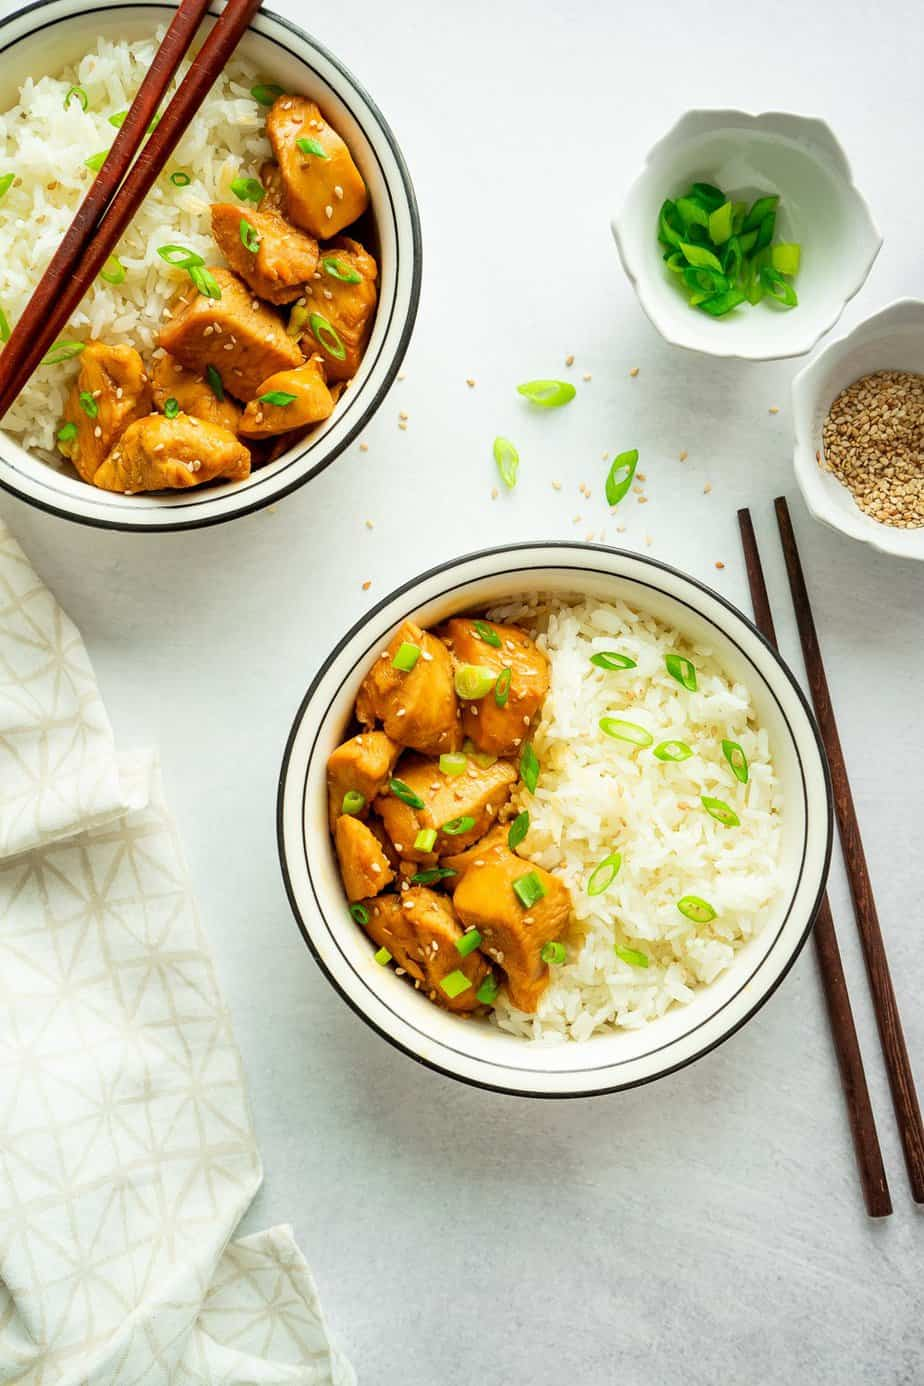 chopstick, chopped green onion in a small bowl, two serving of asian flavor chicken with white rice.